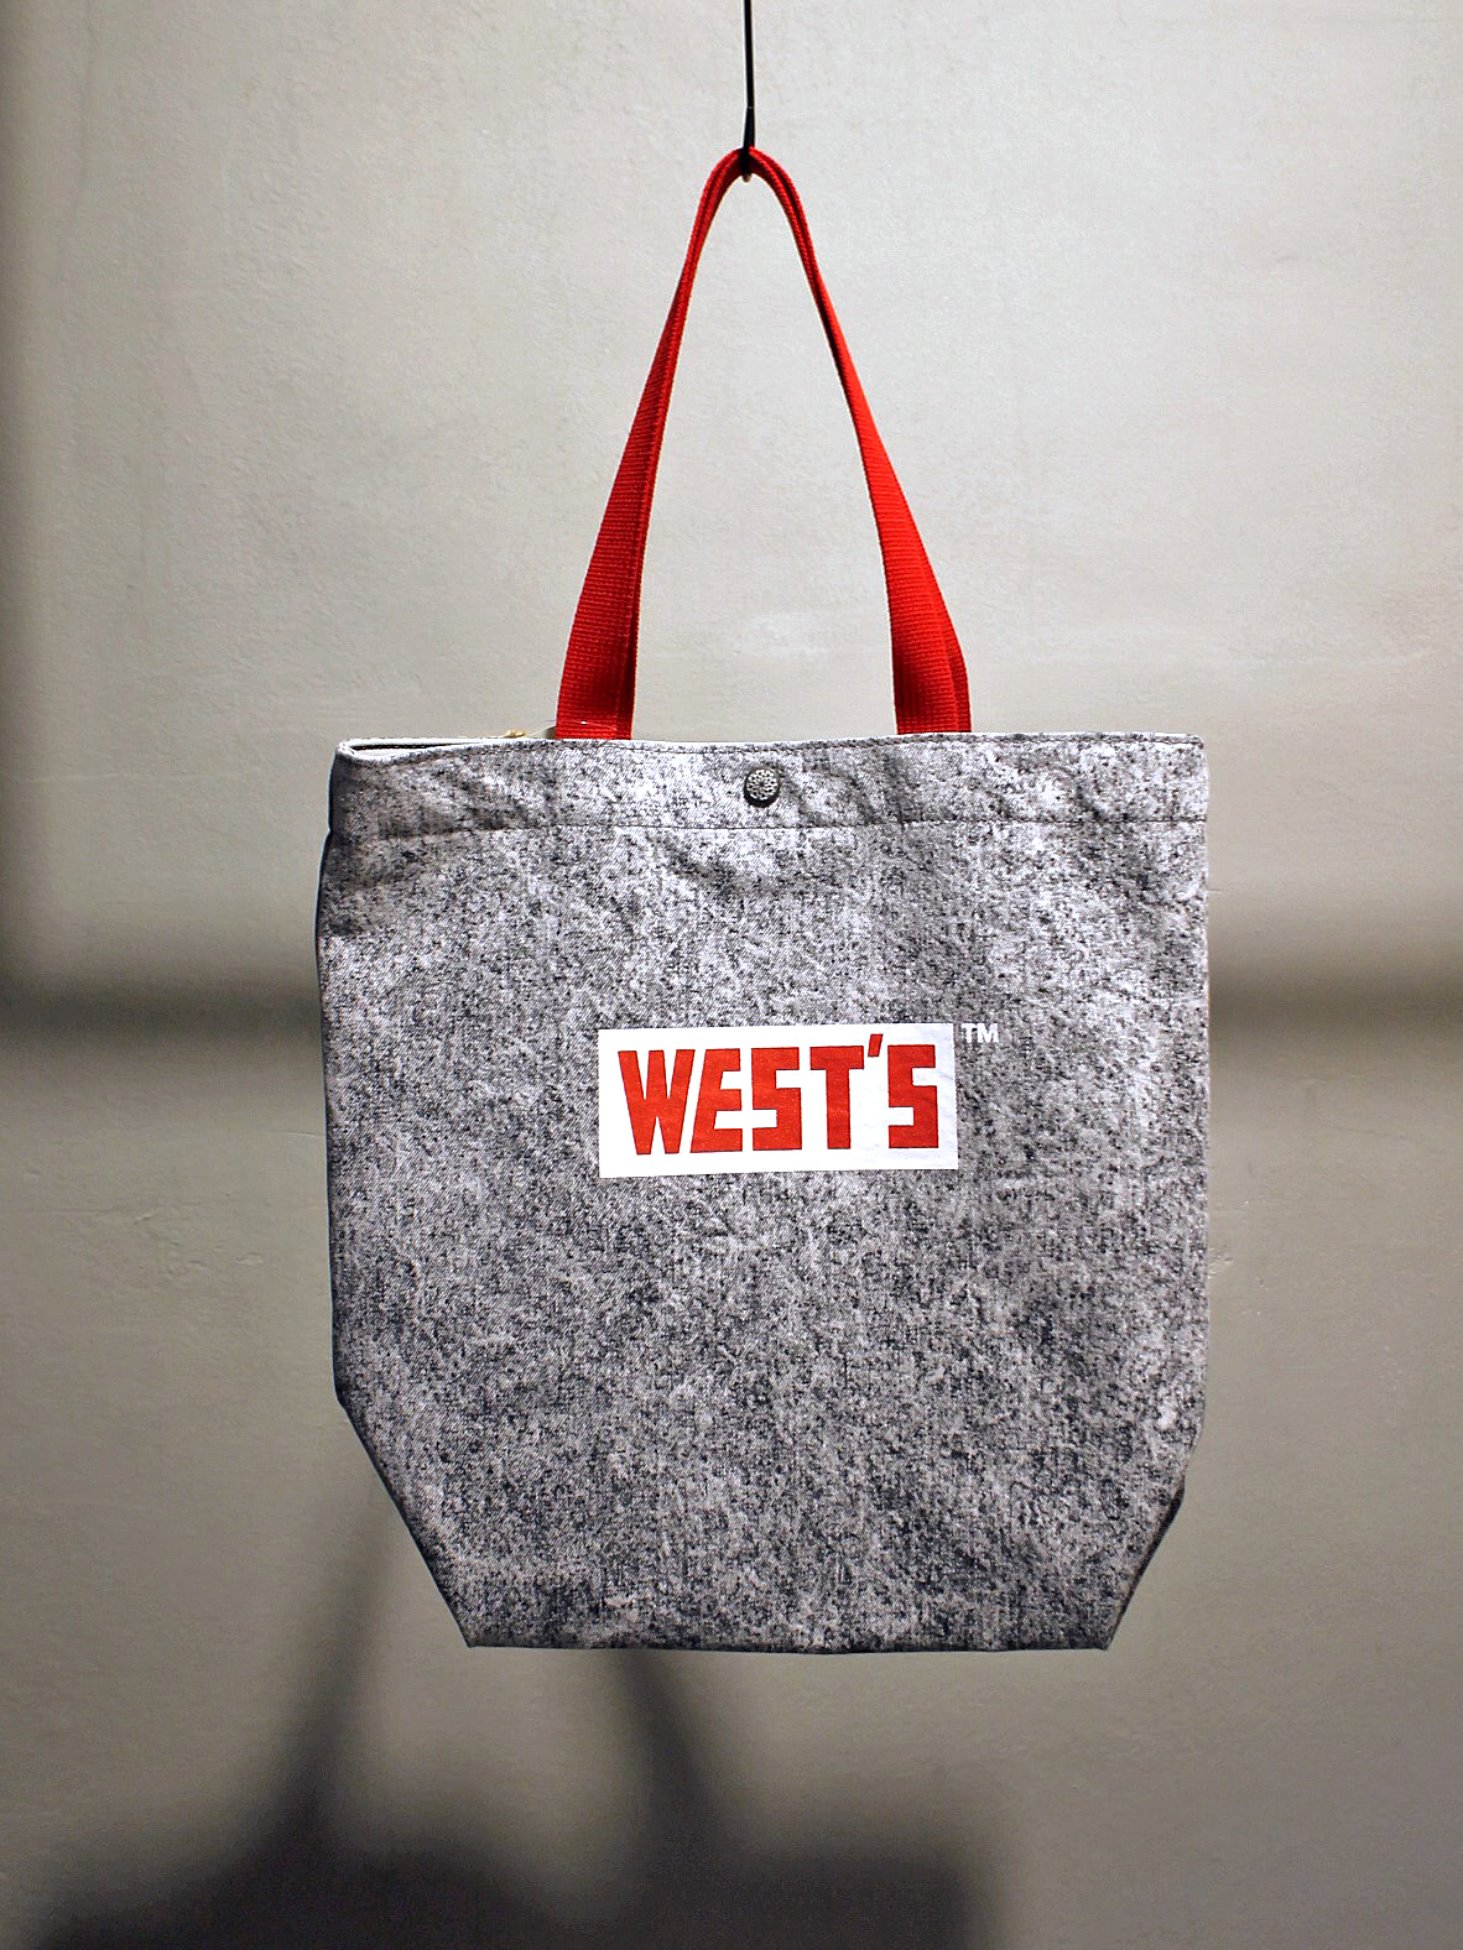 [WESTOVERALLS] West's Tote Bag (C.Black)